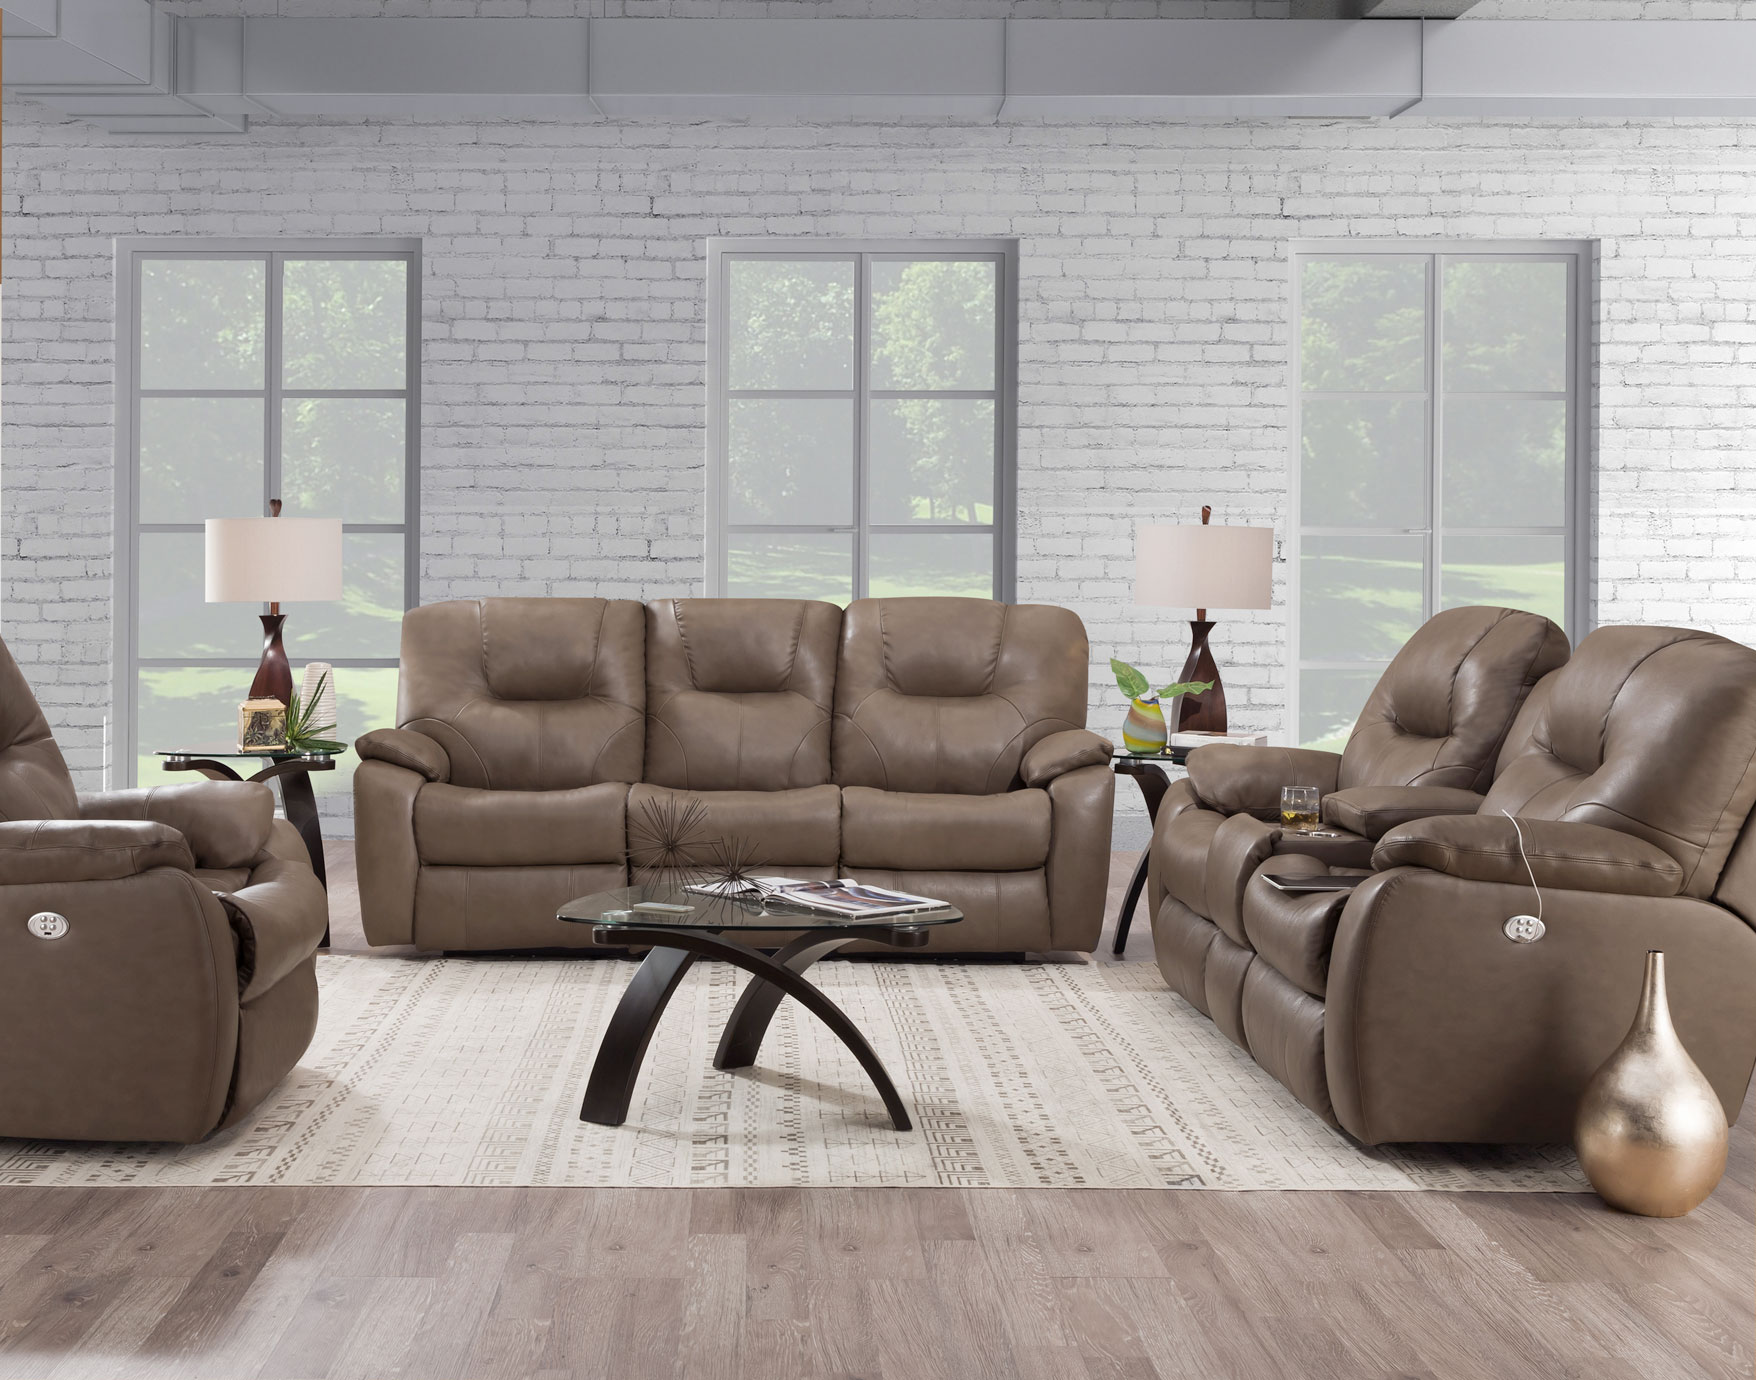 838-AVALON-IN-936-17-ST.-LAURENT-TAUPE-PU-RS_web